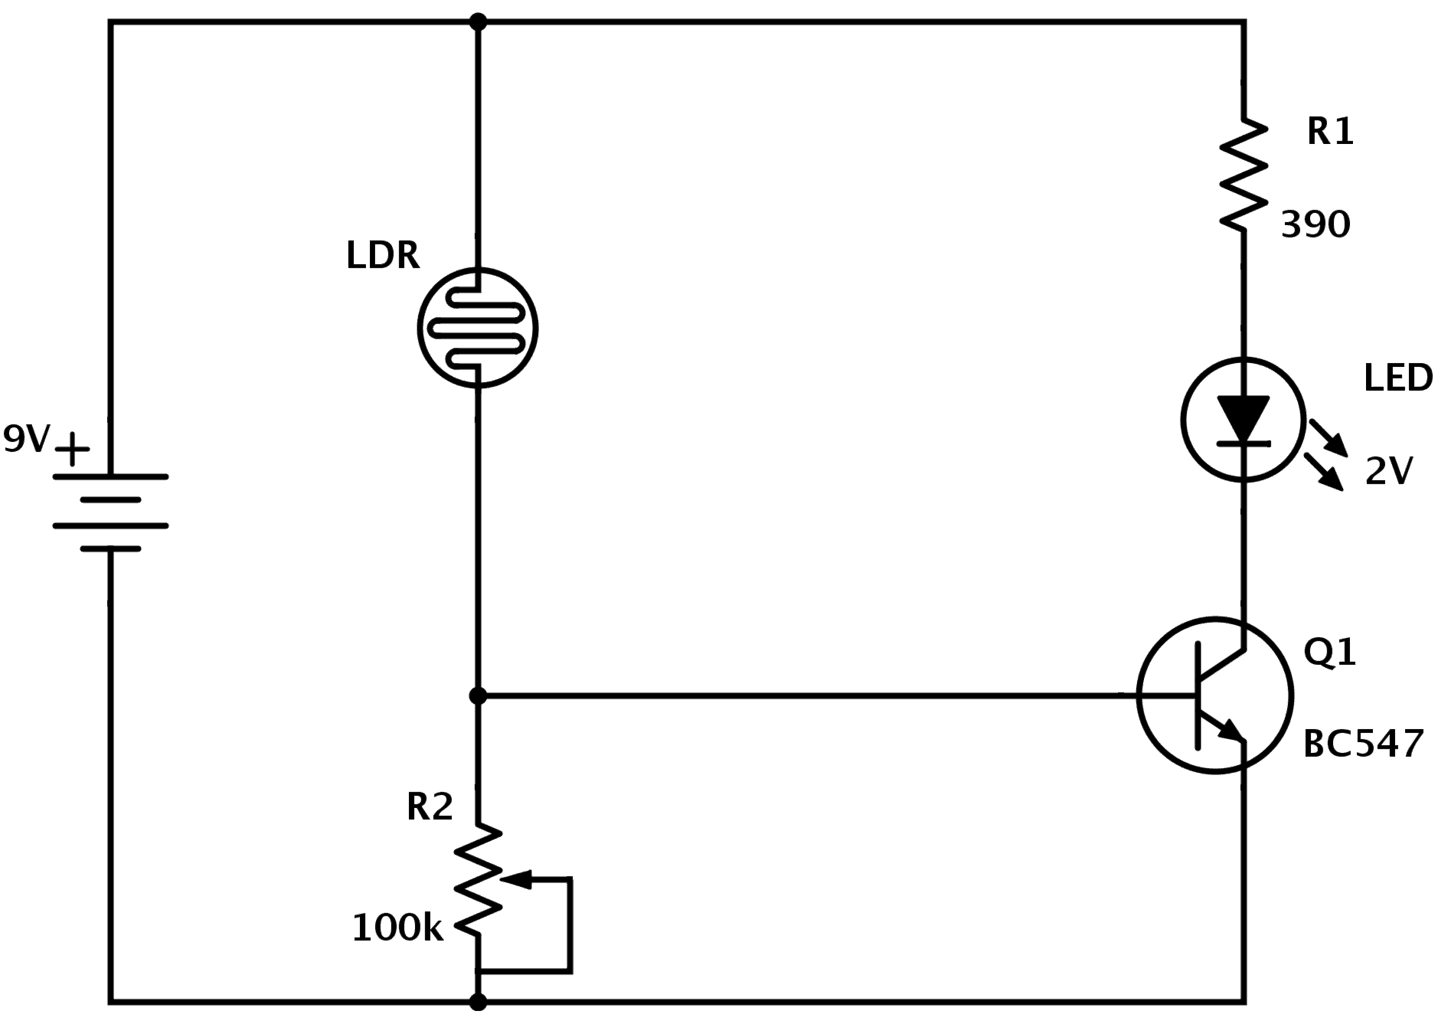 circuit diagram how to read and understand any schematic rh build electronic circuits com circuit diagram builder circuit diagram problems